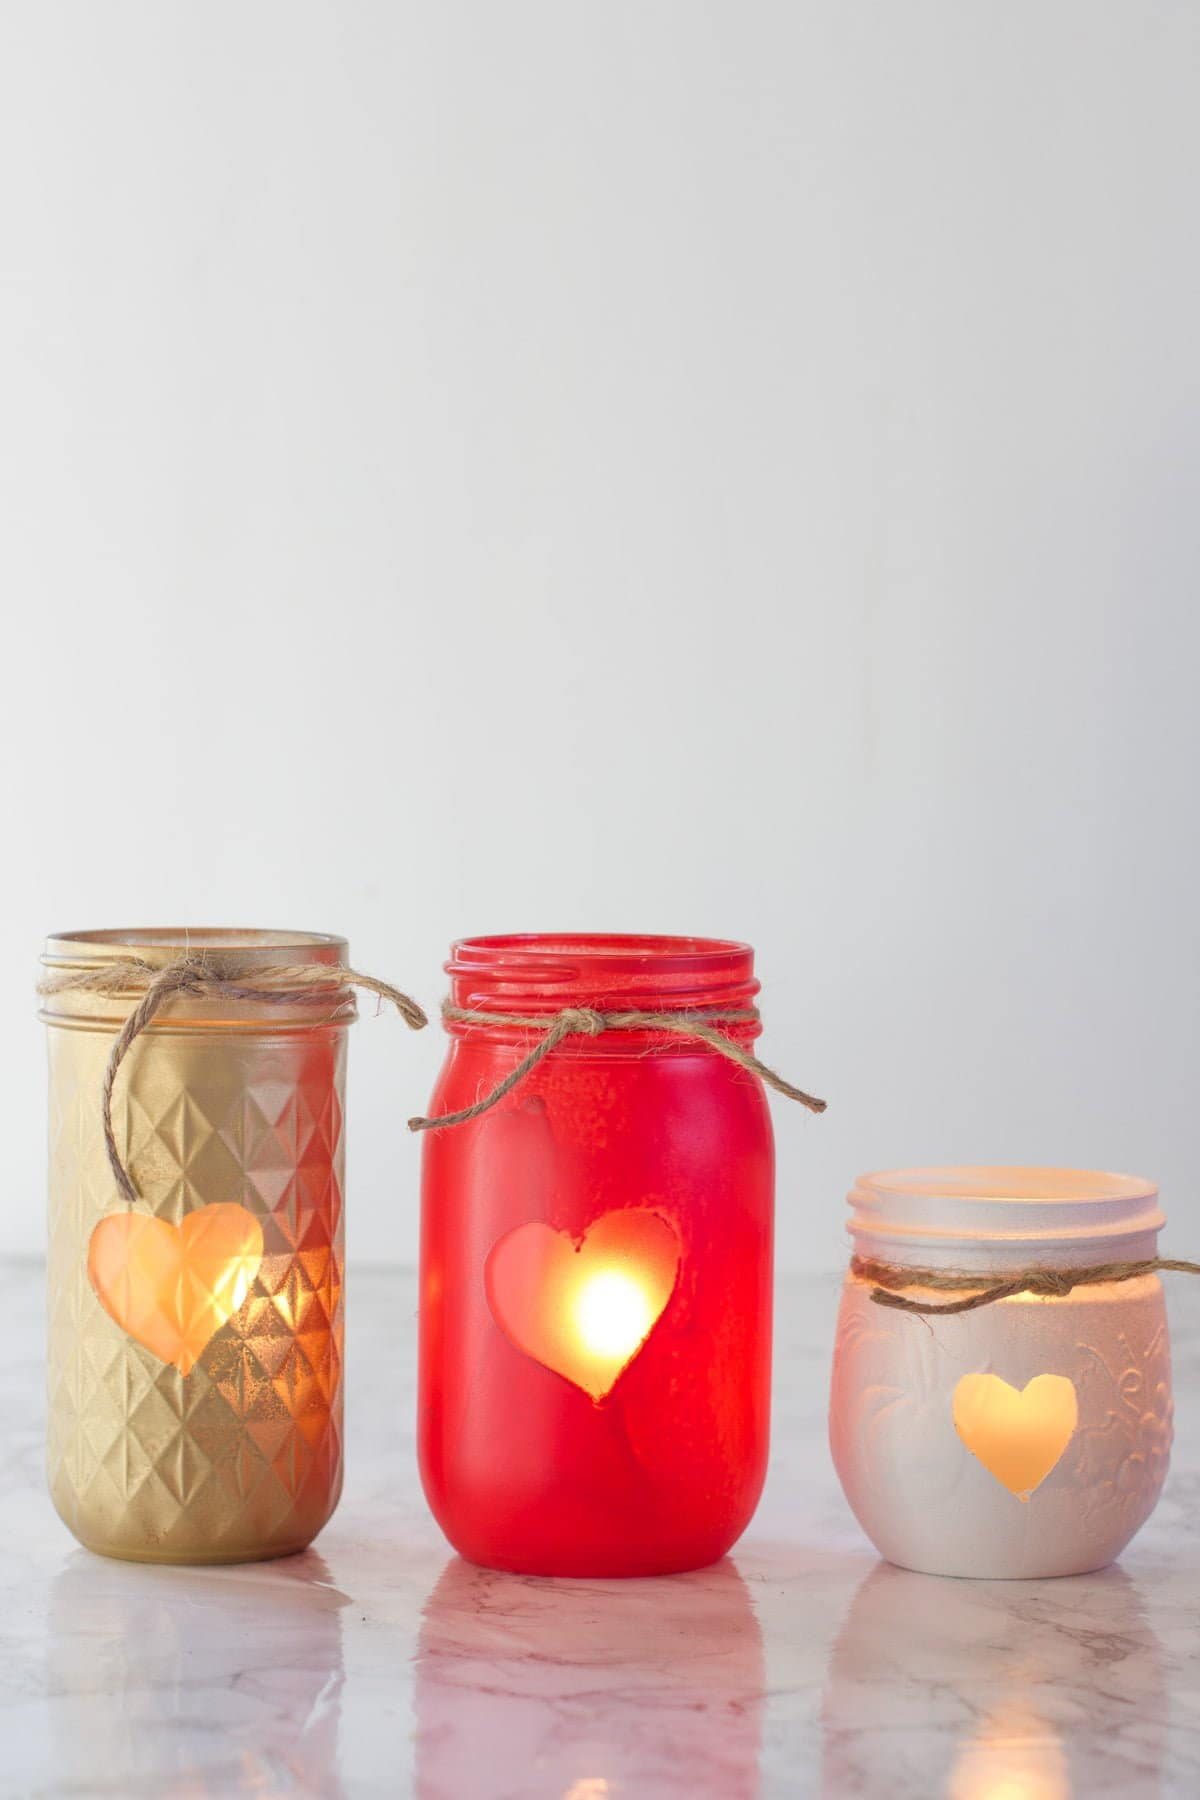 Three Painted Mason Jar Votive Holders, each with a heart and a piece of twine. The jars are gold, red, and white.